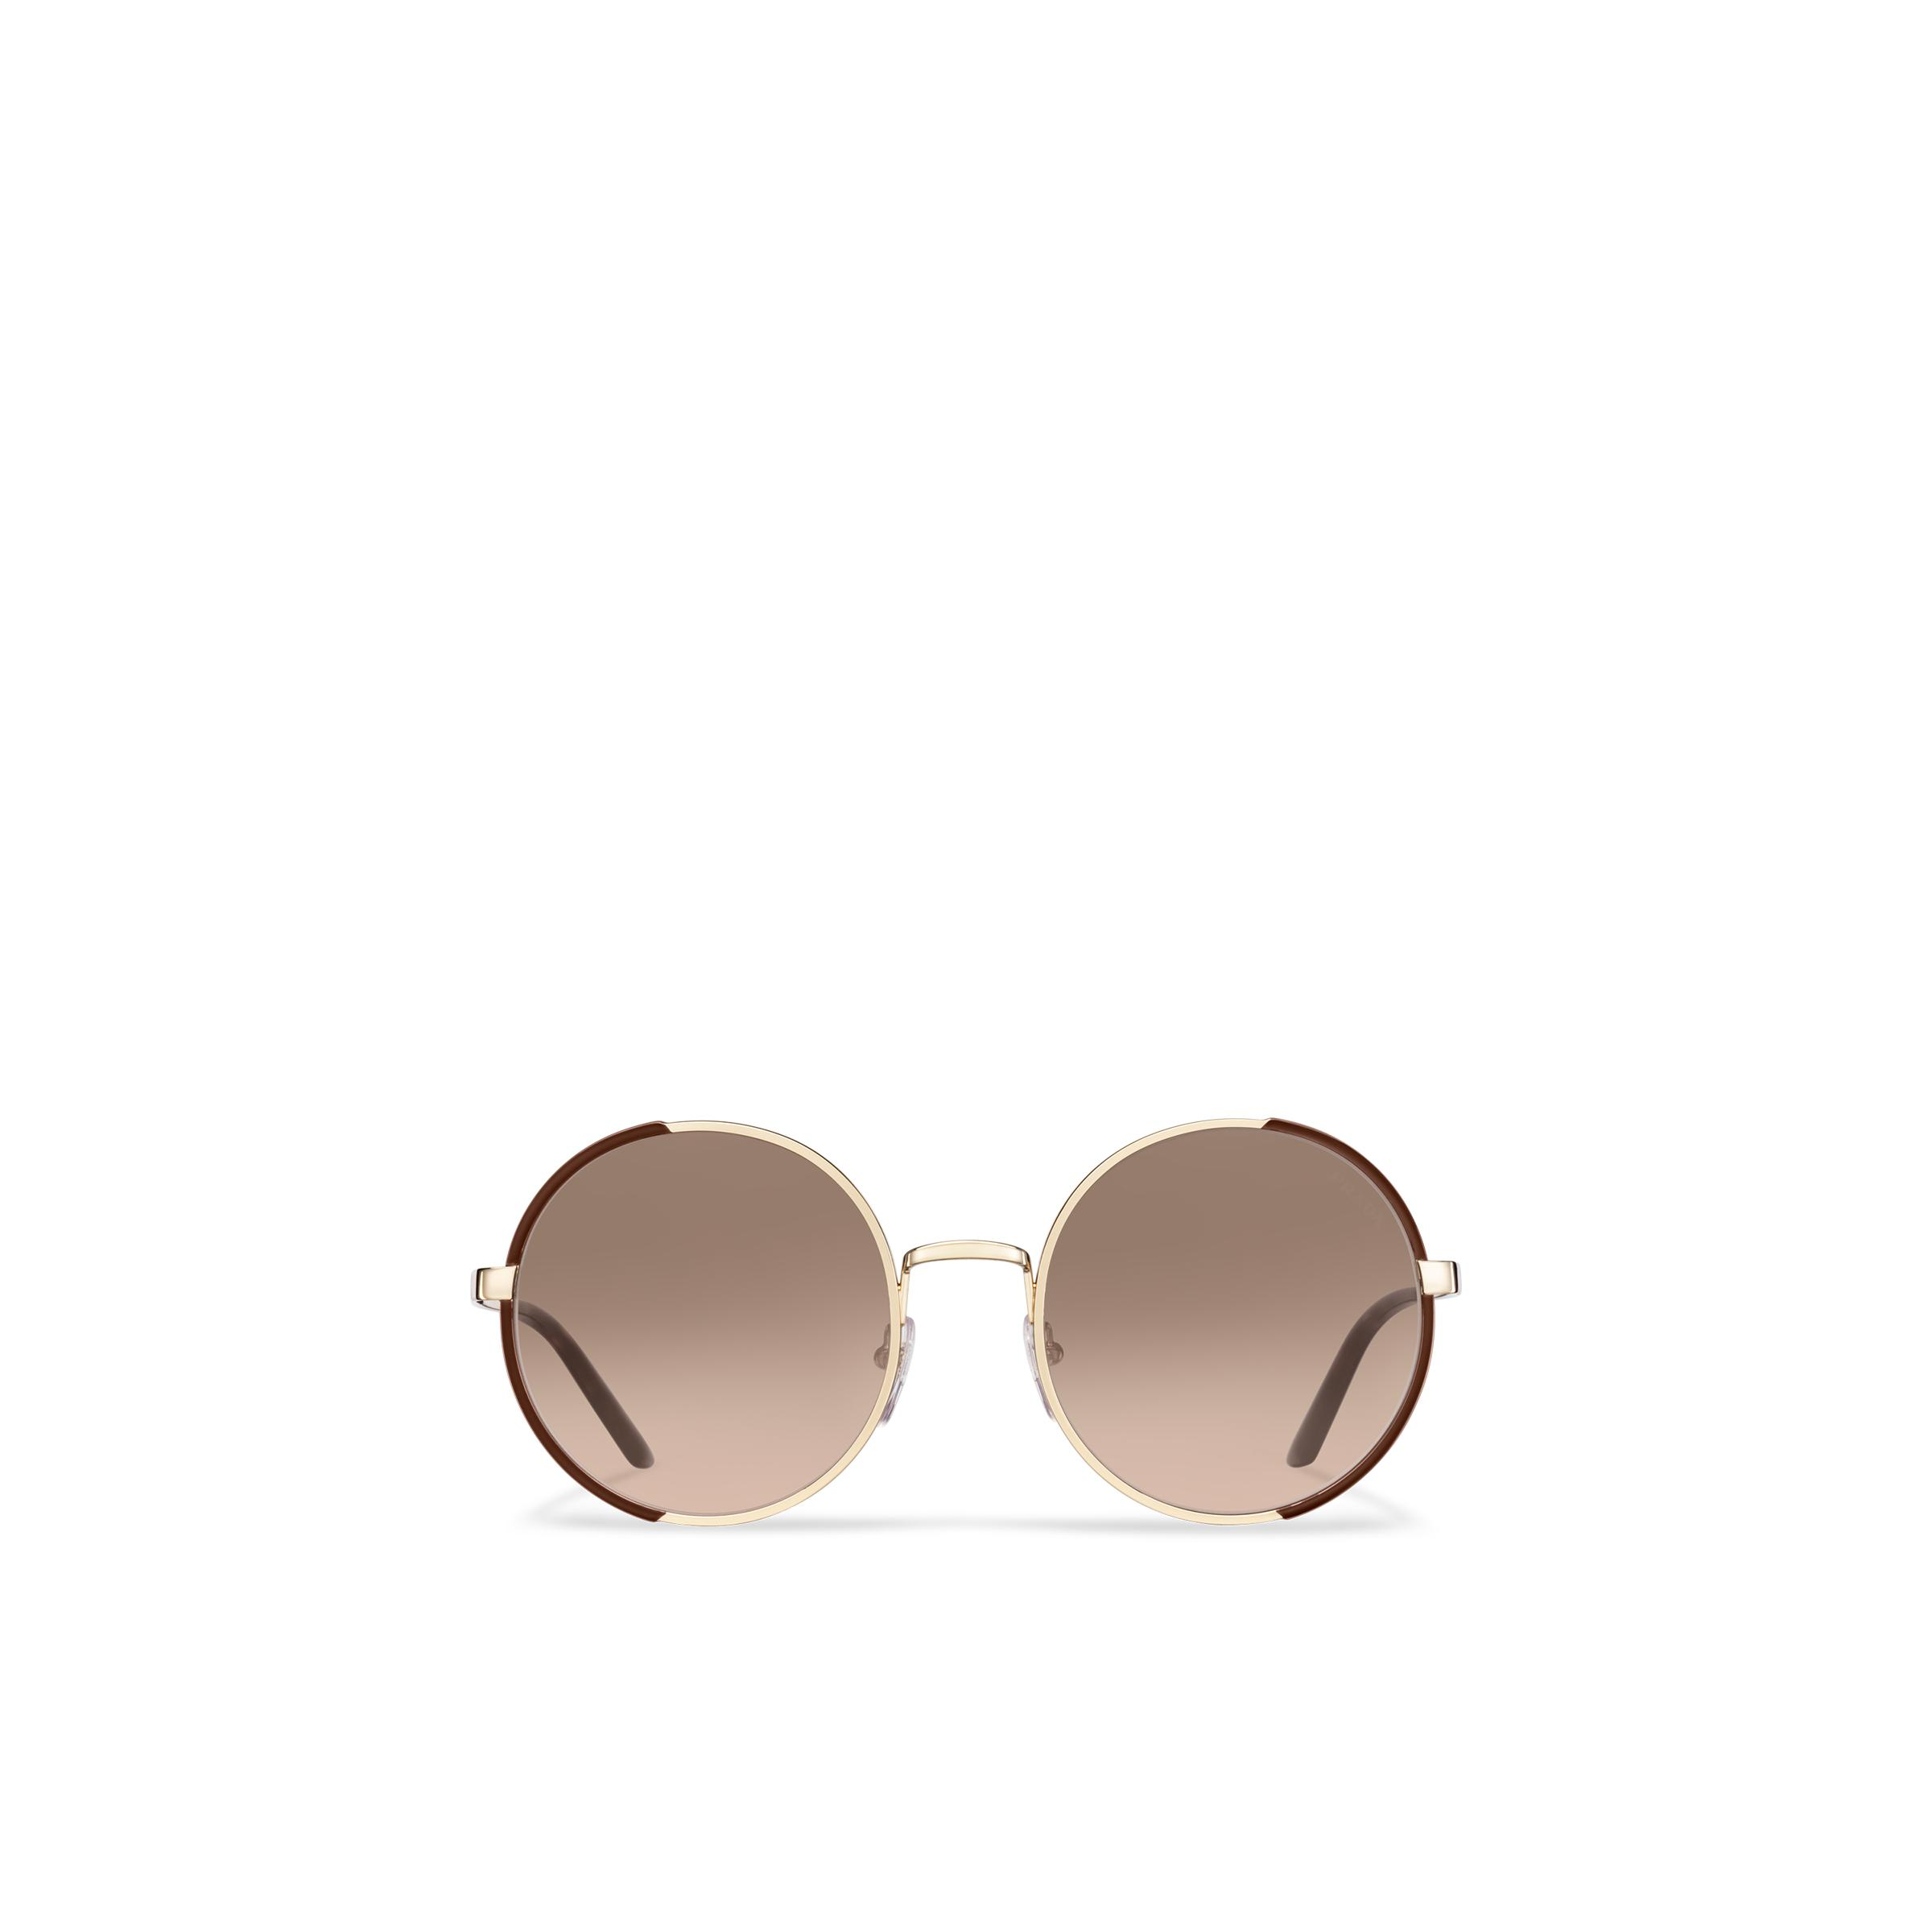 Eyewear Collection Sunglasses Women Gradient Anthracite Gray To Cammeo Beige Lenses